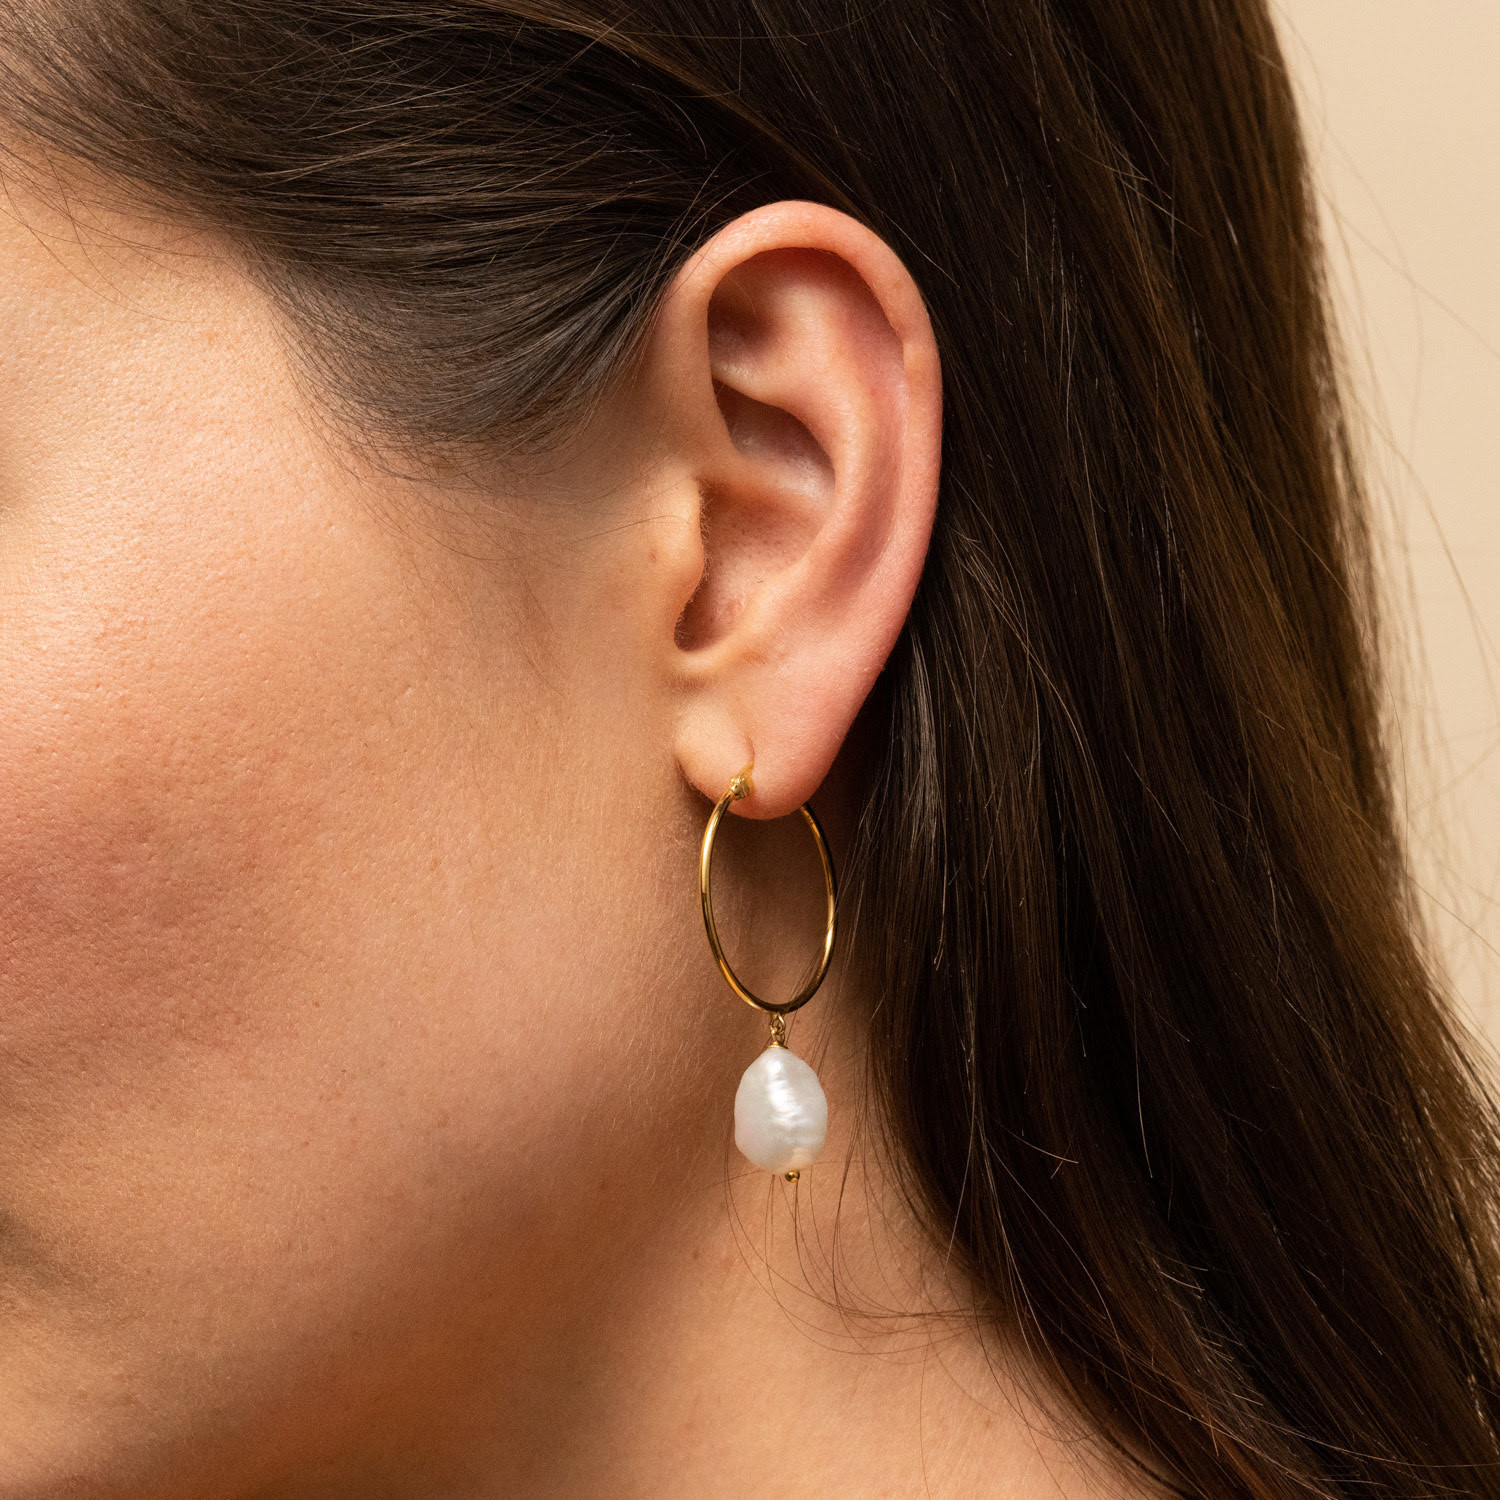 A model wearing a gold hoop earring with a large pearl on the end